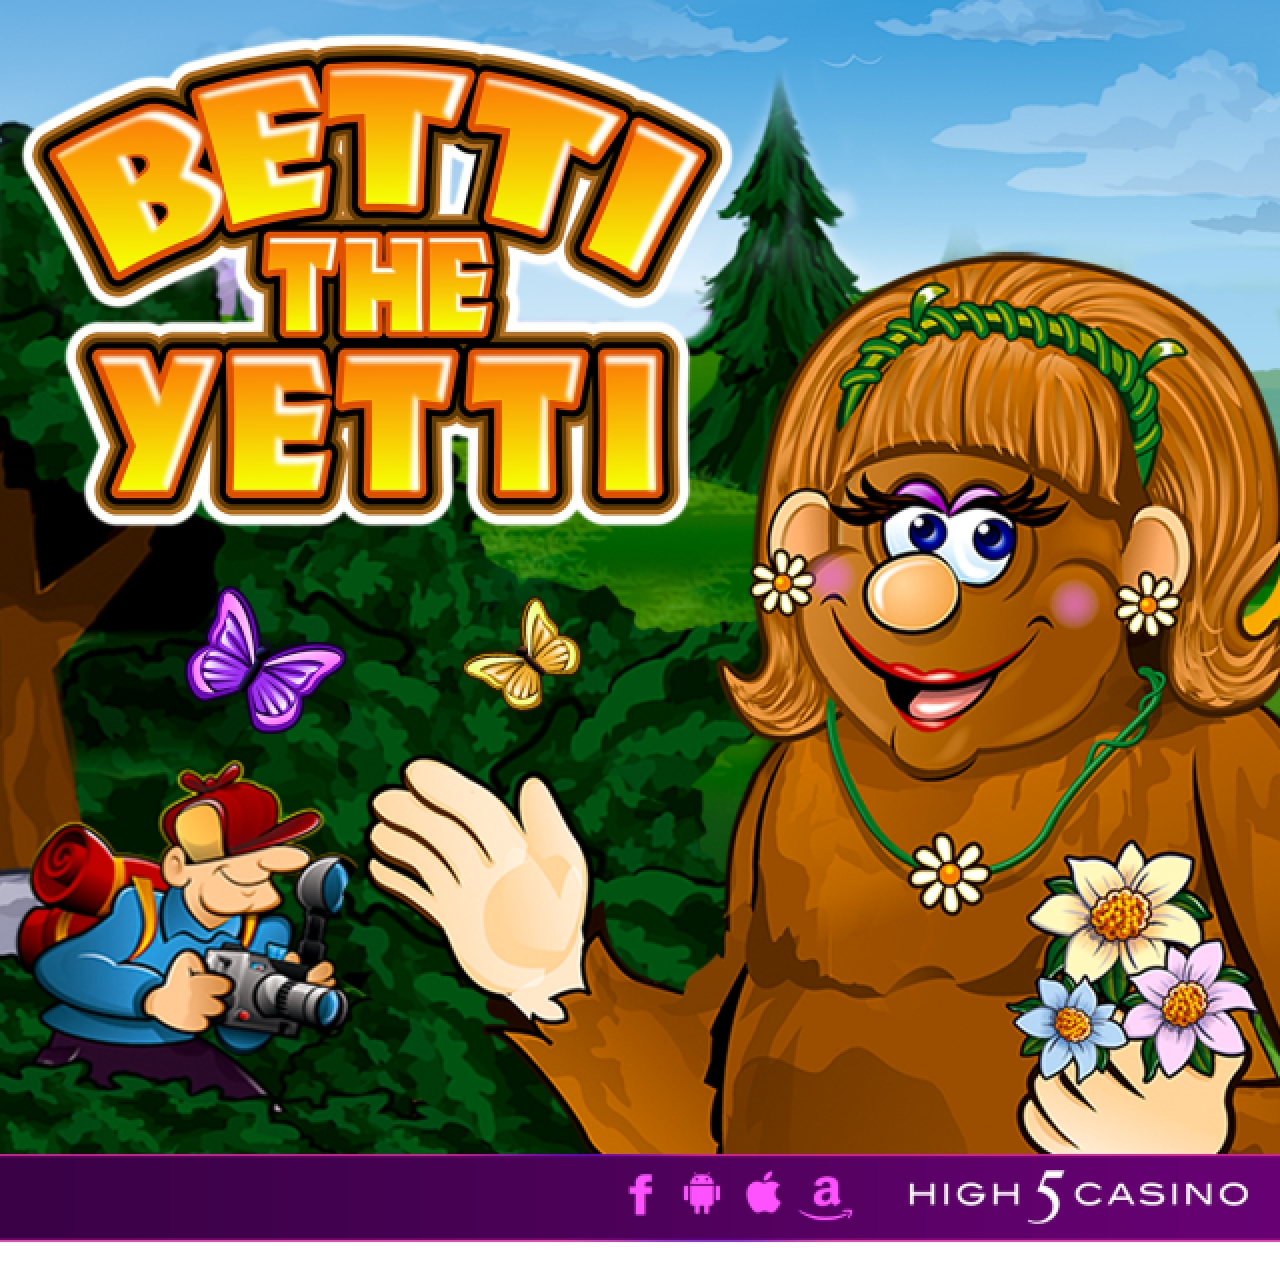 The Betti the Yetti Online Slot Demo Game by High 5 Games